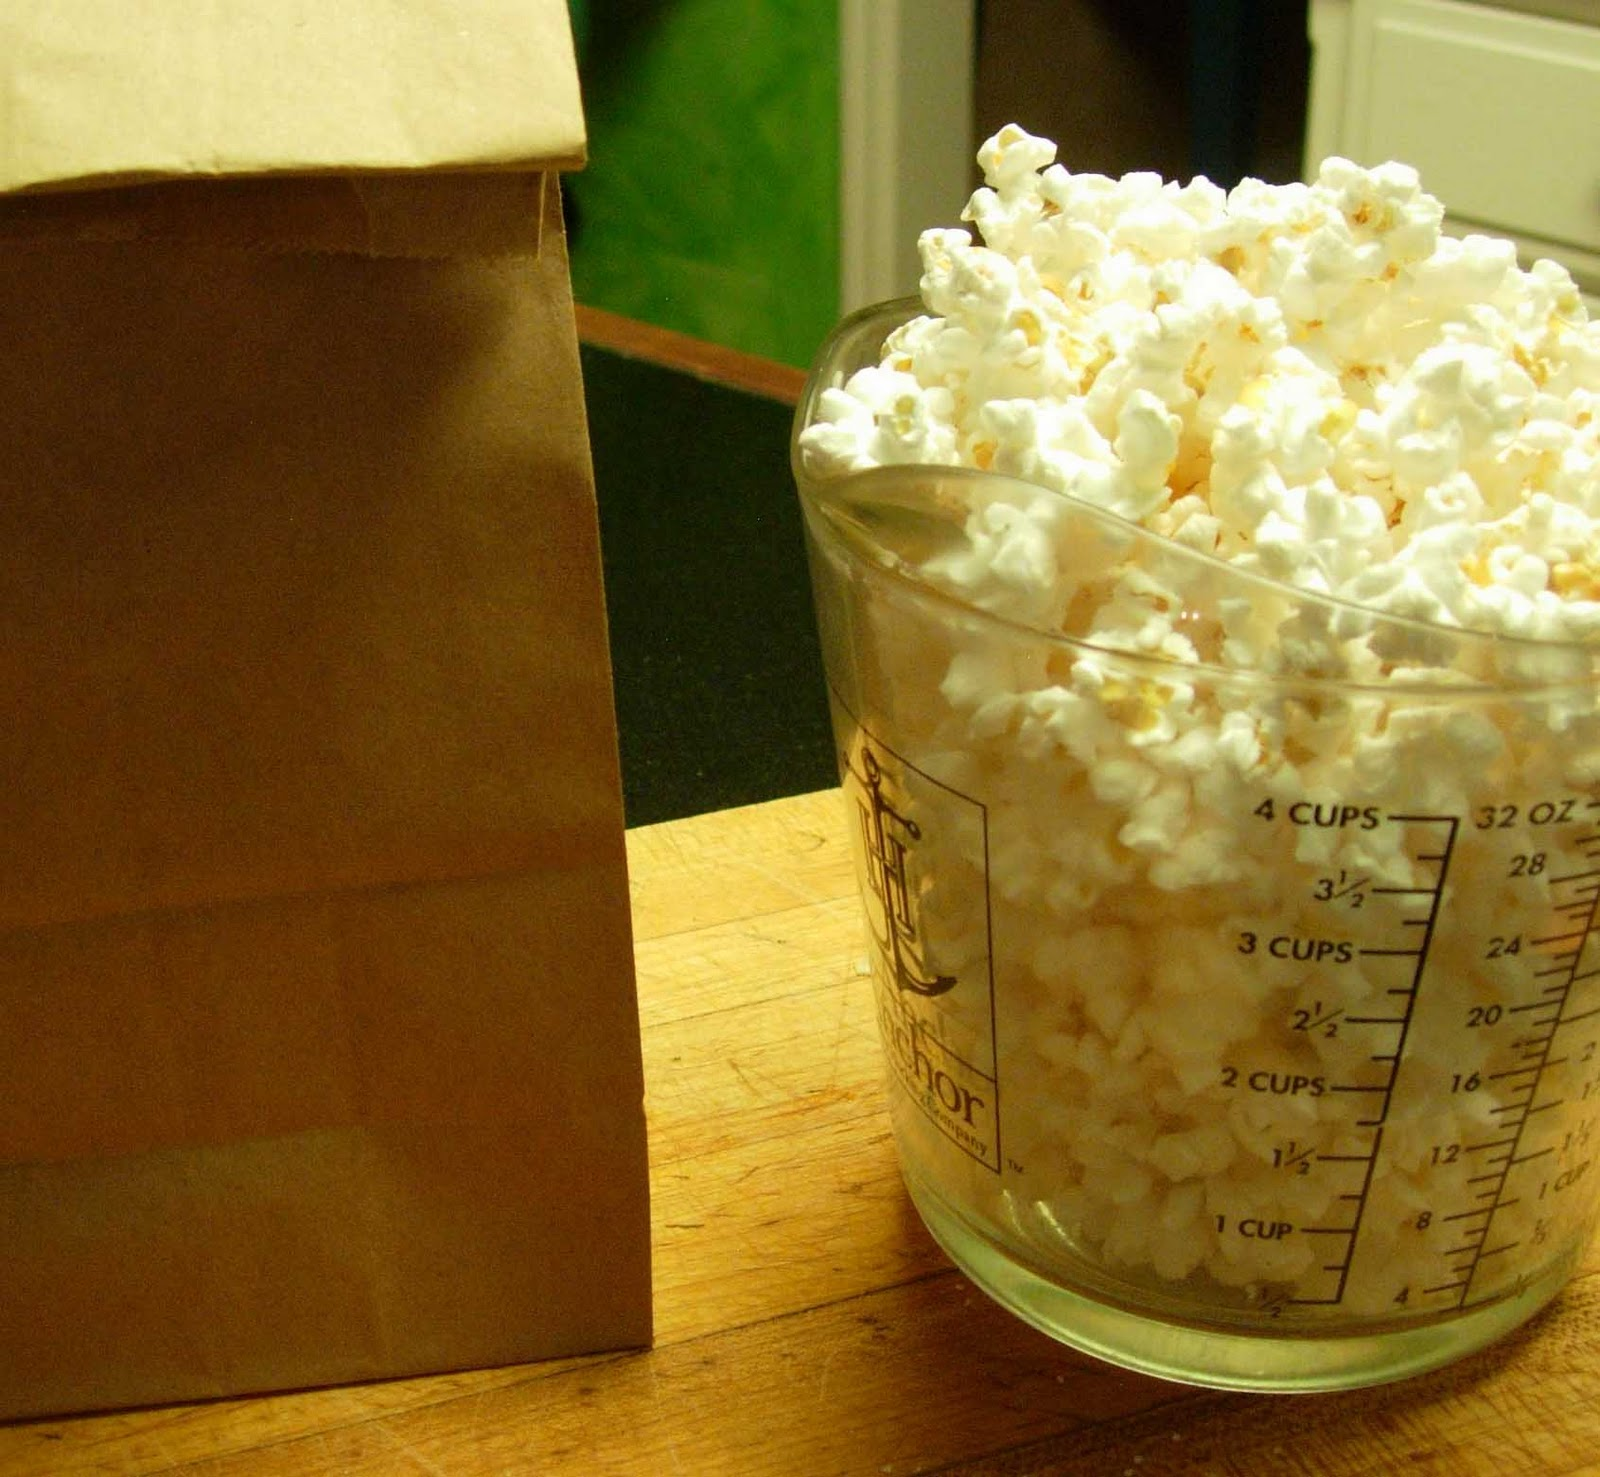 This is How I Cook: Microwave Caramel Corn (Believe It)